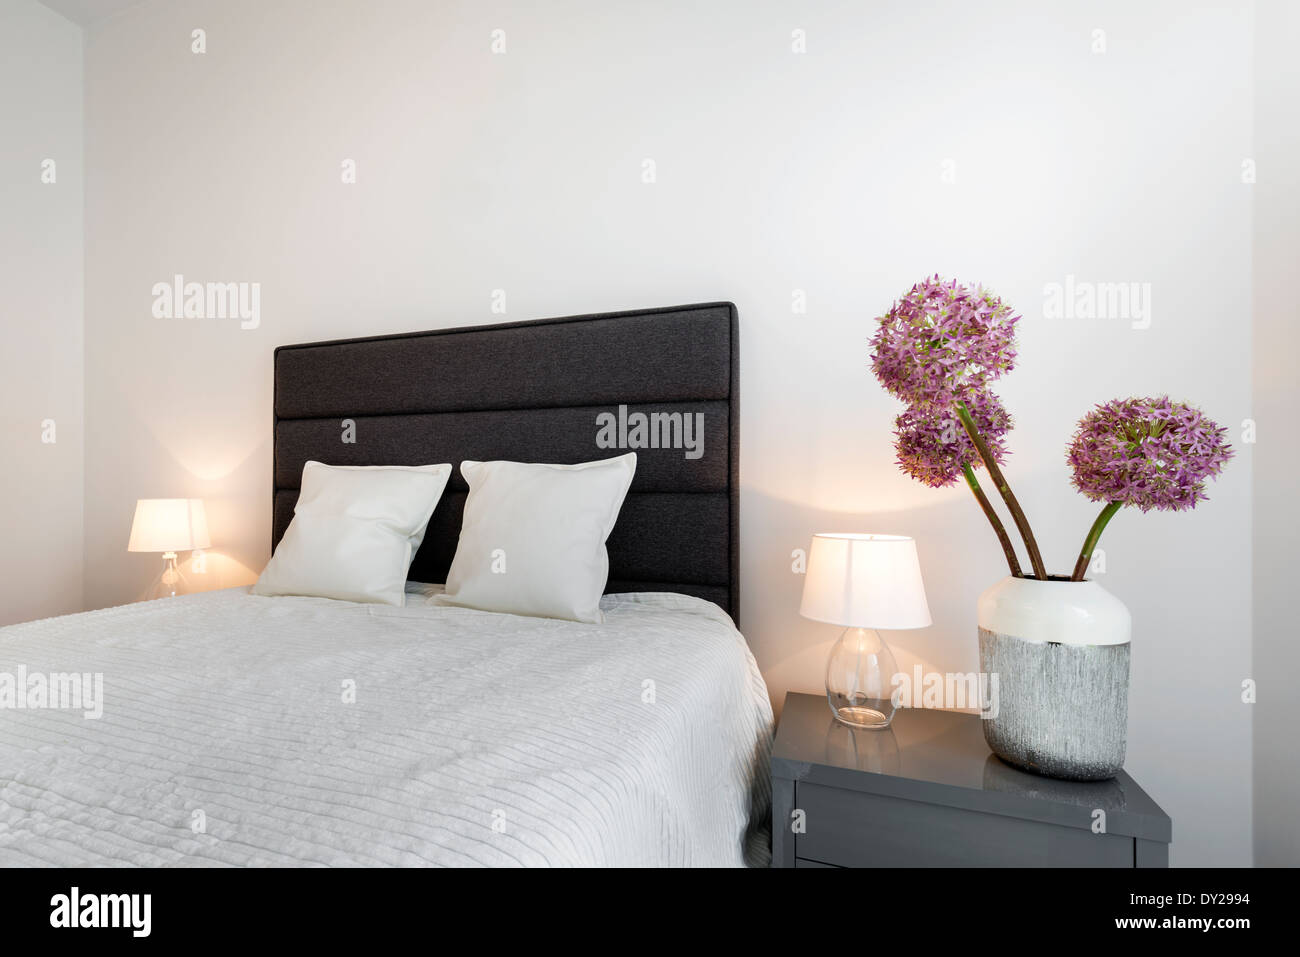 Middle size bed in small bedroom Stock Photo: 68278032 - Alamy